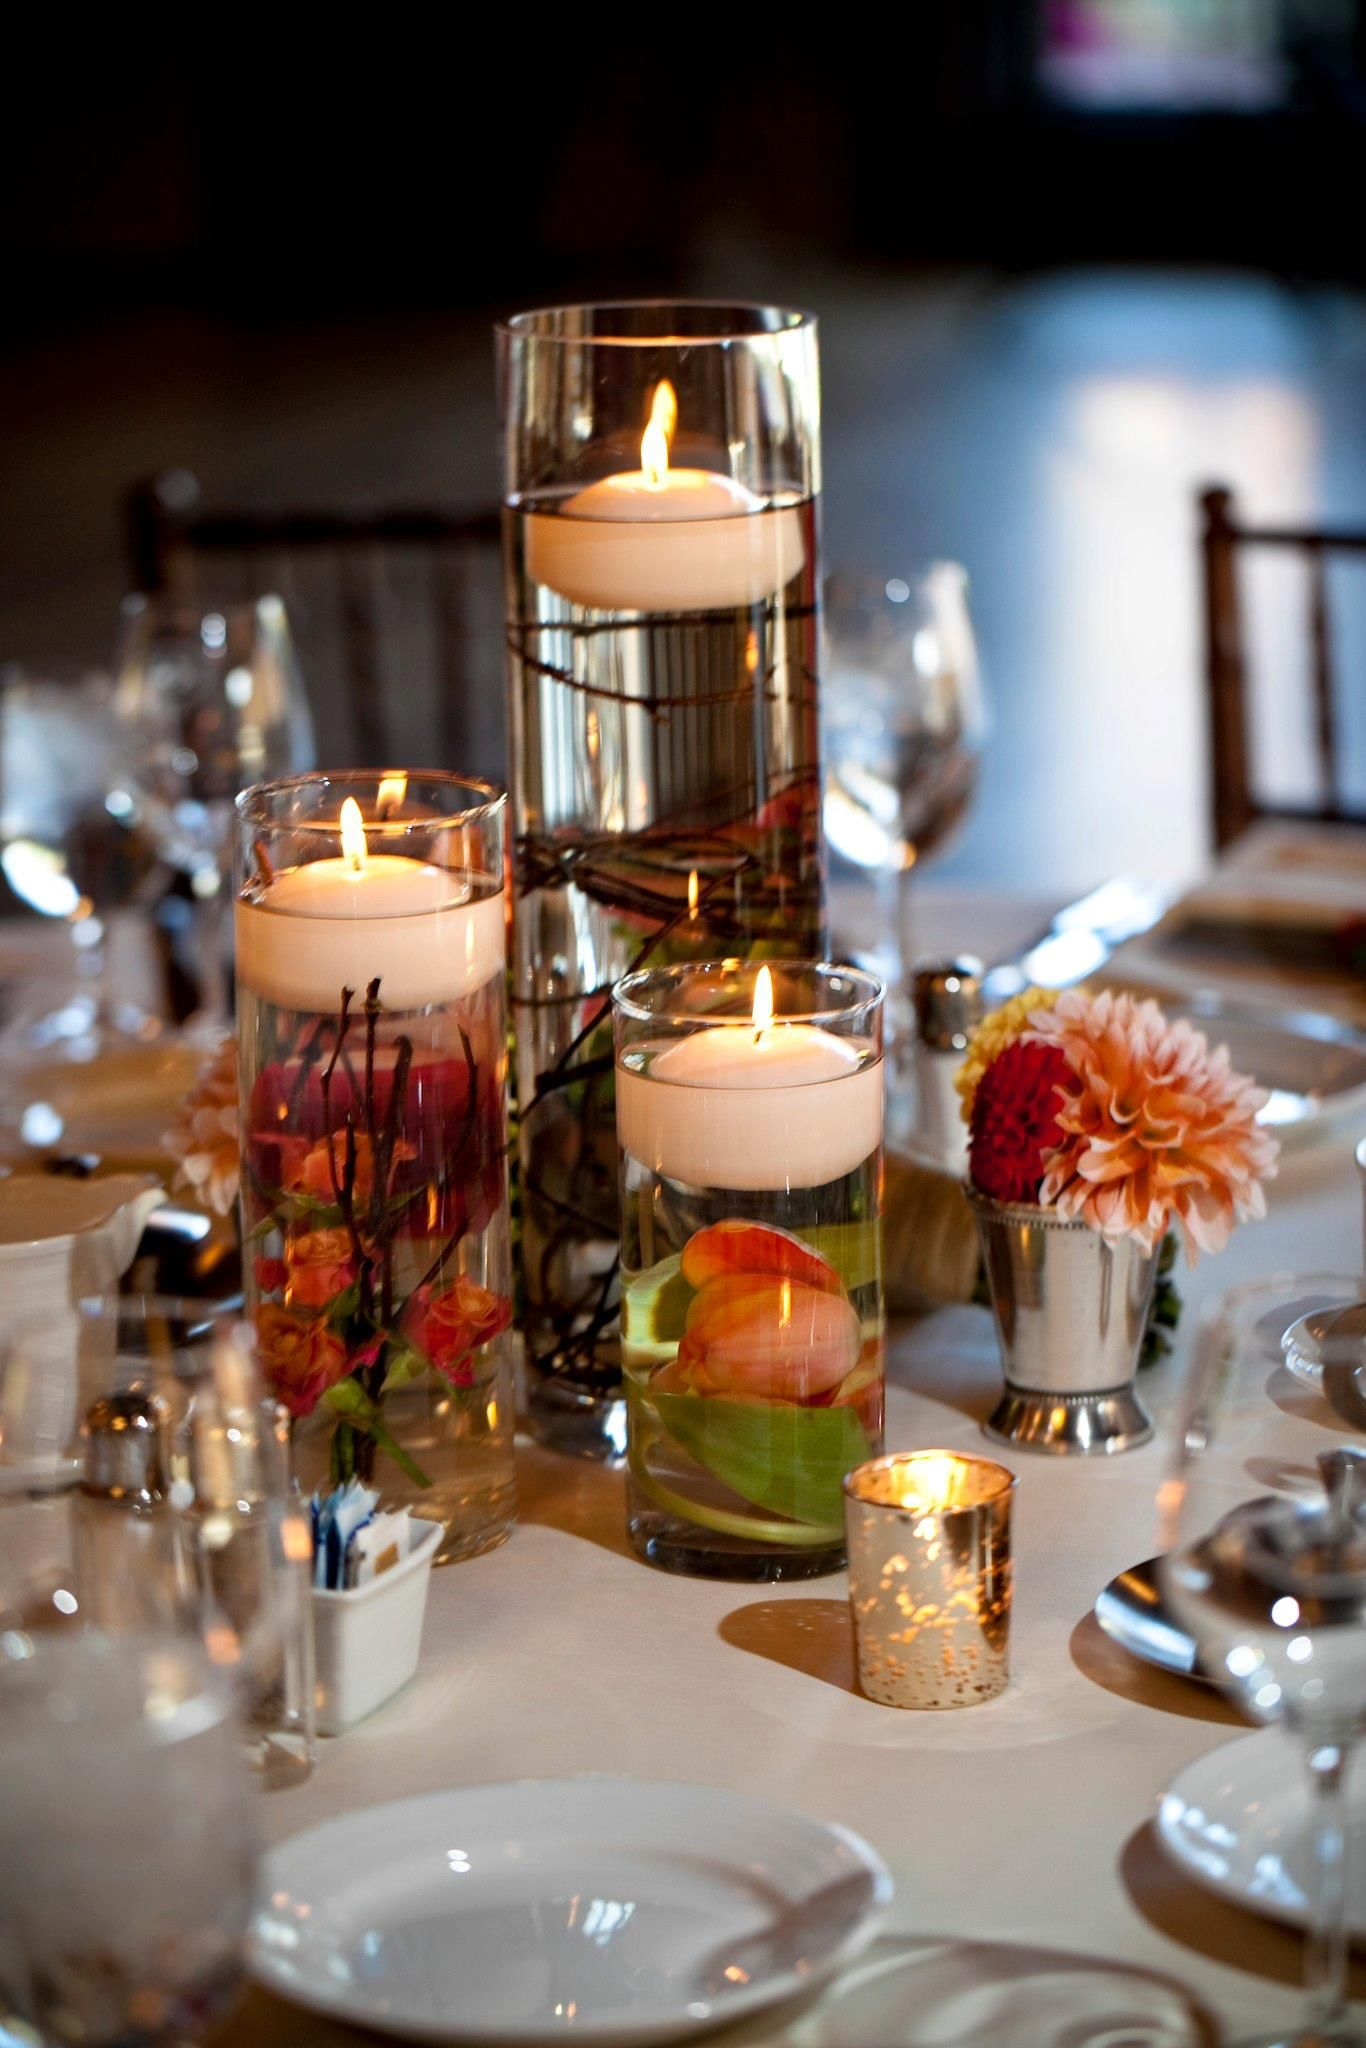 Floating Candle Wedding Centerpiece With Submerged Flowers -7859